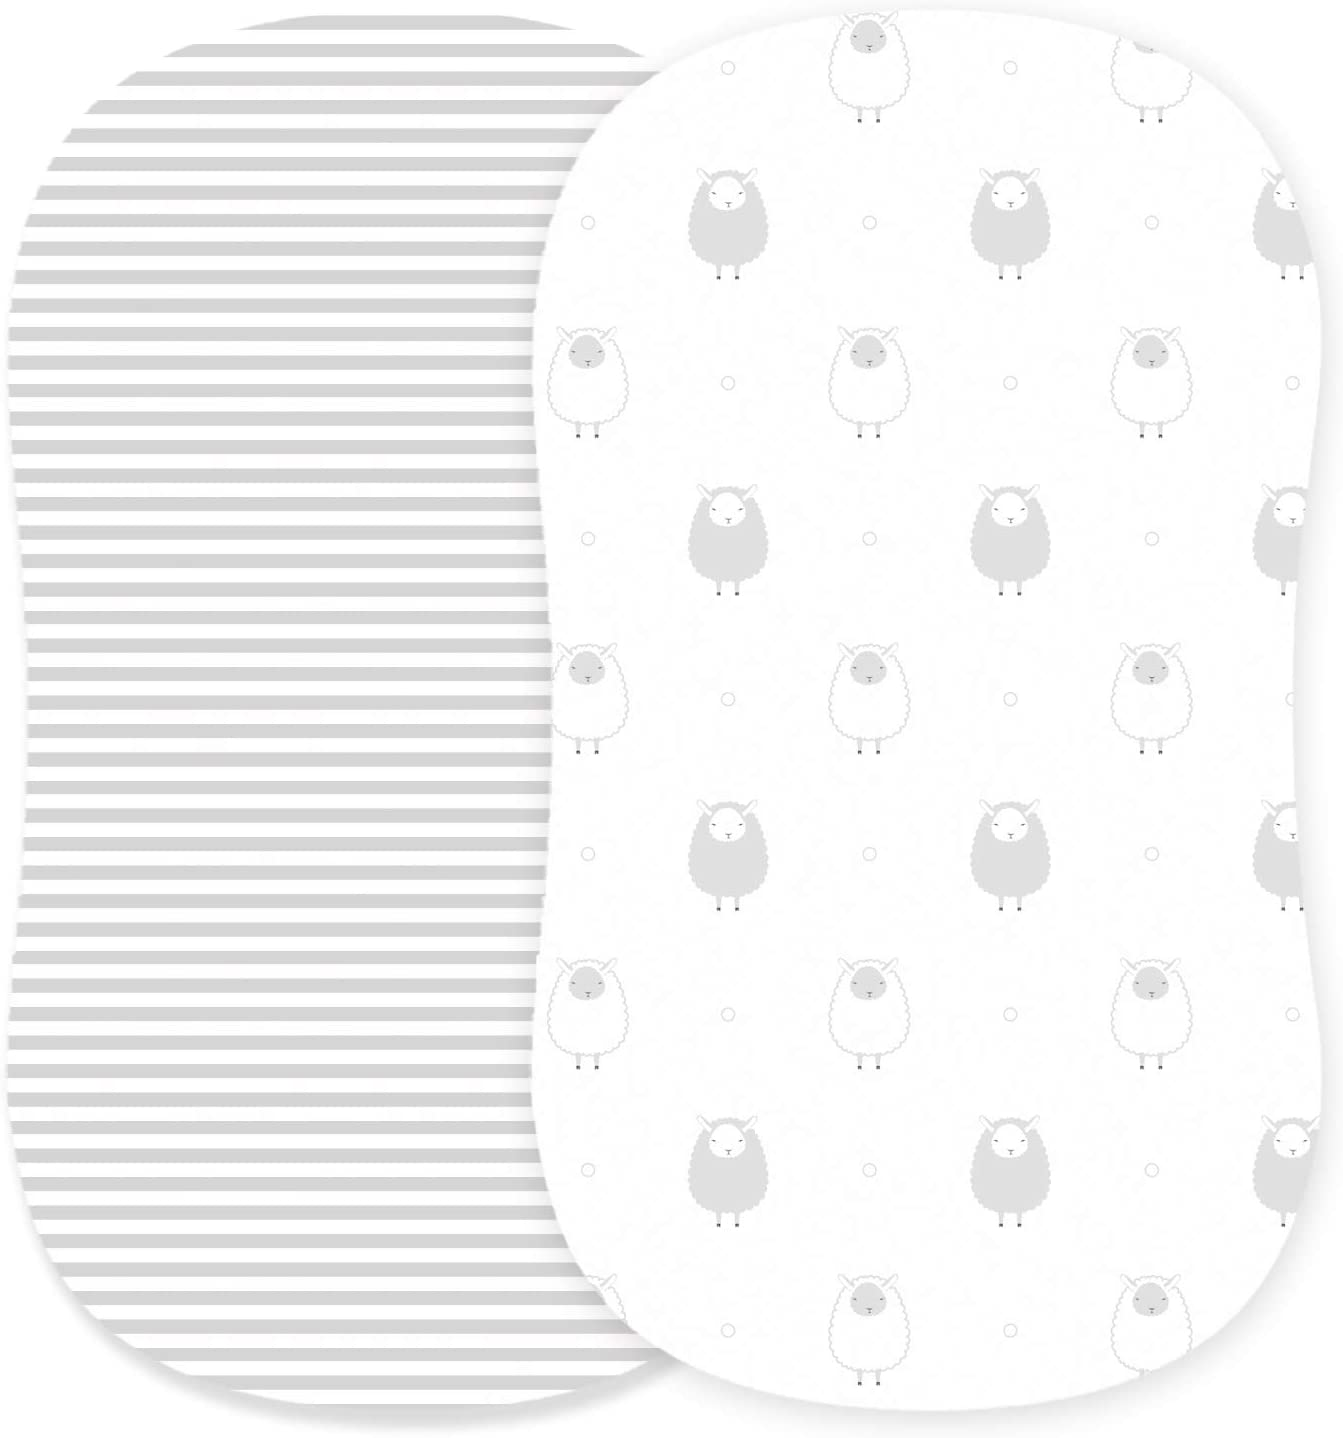 Fits Oval Chicco Adorable Unisex Patterns /& Fitted Elastic Design Halo Cuddly Cubs Bassinet Sheets Set 2 Pack For Boys /& Girls by Soft /& Breathable 100/% Jersey Cotton Grey Sheep /& Stripes